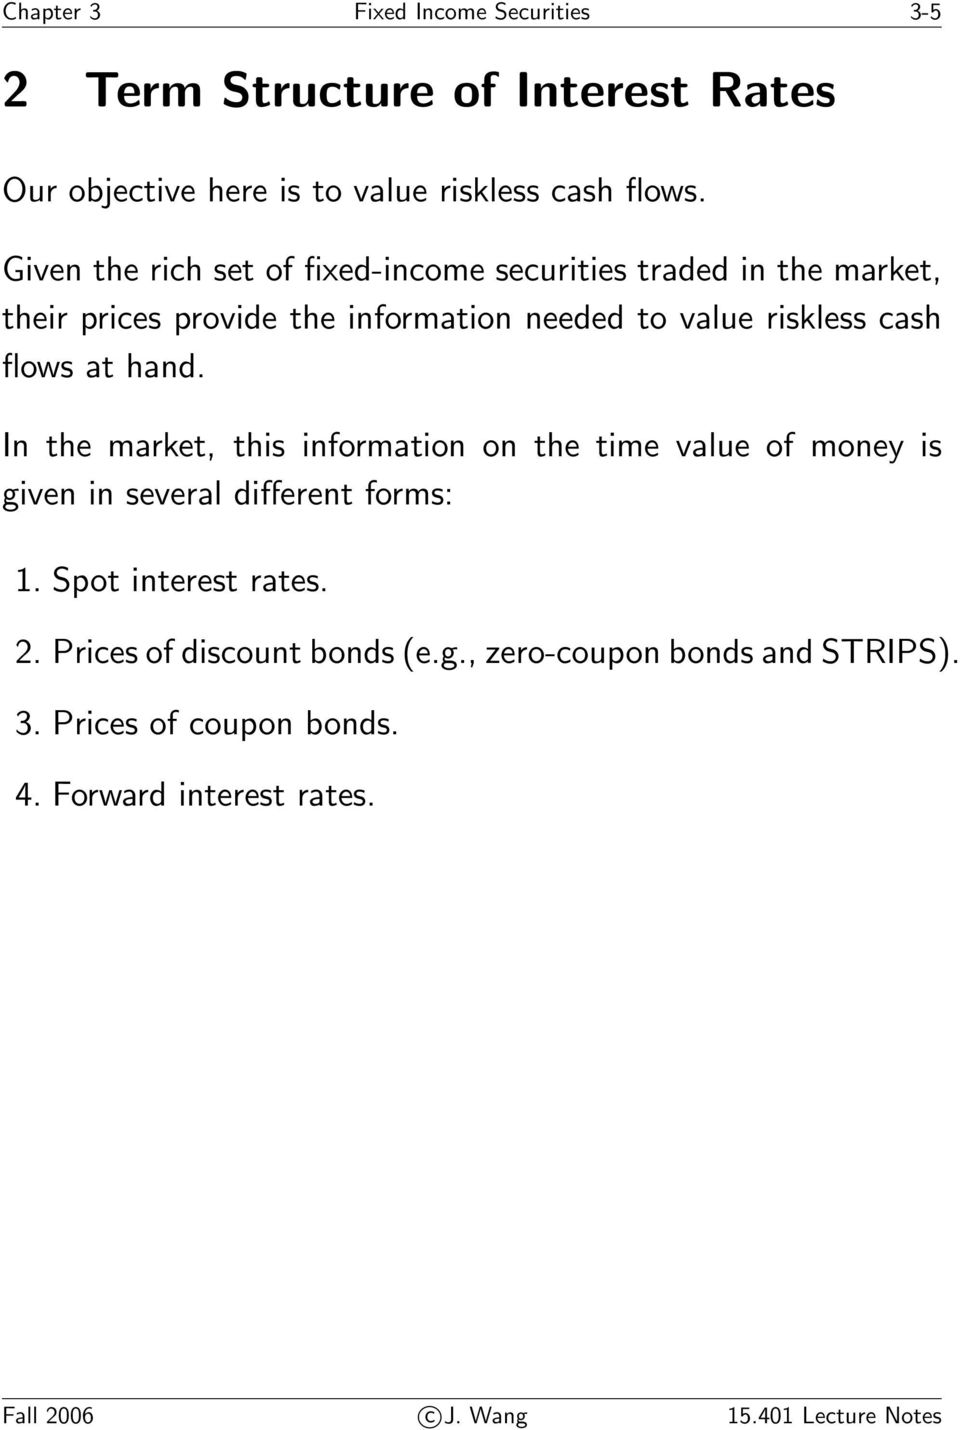 flows at hand. In the market, this information on the time value of money is given in several different forms: 1. Spot interest rates. 2.